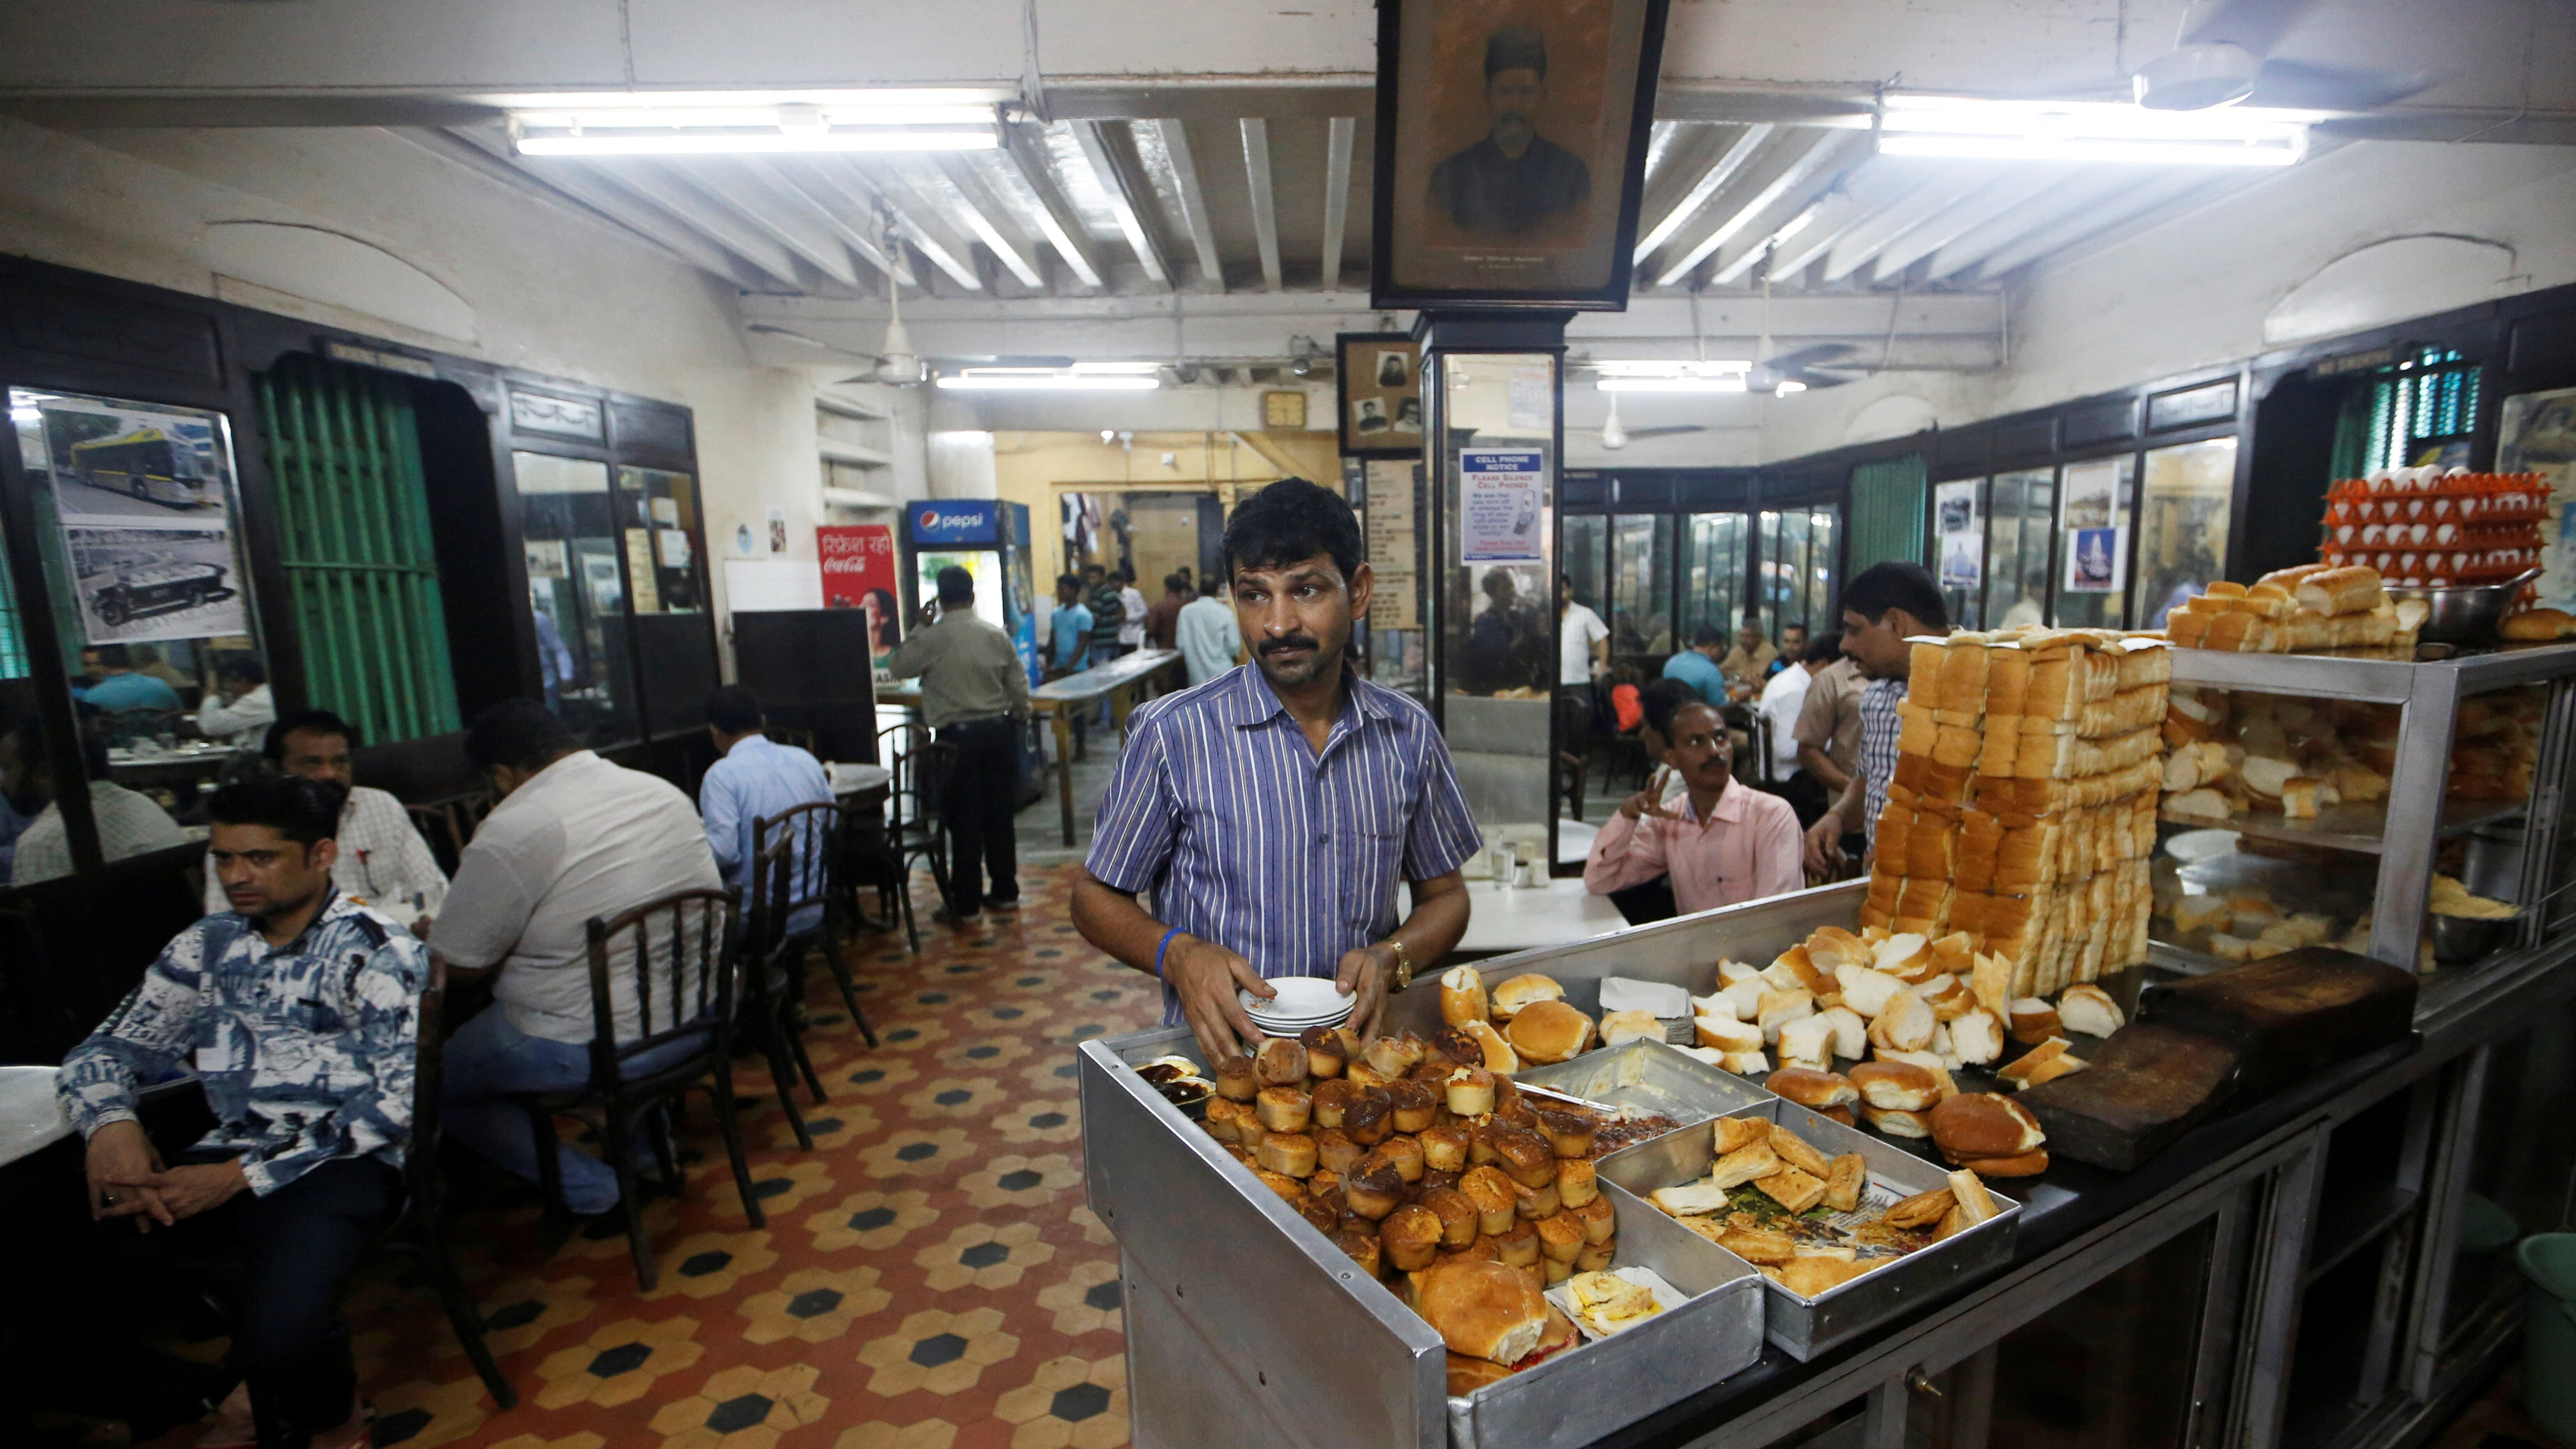 A waiter arranges plates at a counter stacked with breakfast items at an Iranian Parsi restaurant in Mumbai